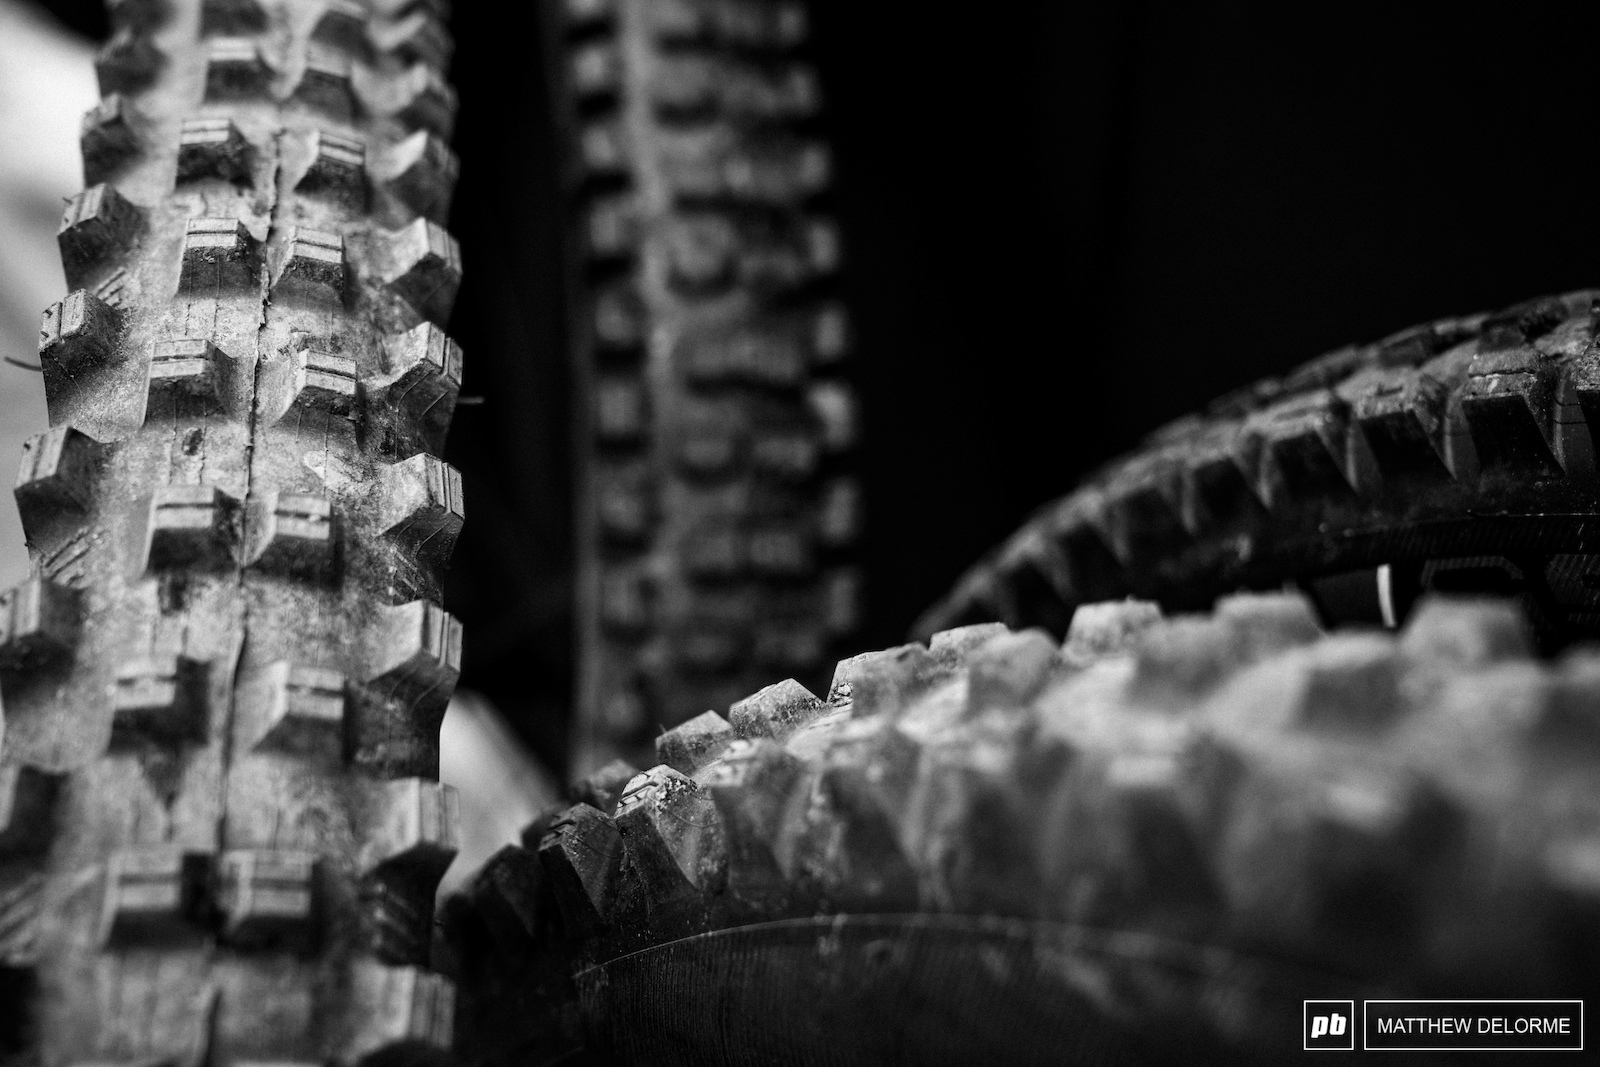 Tire choices at the ready. The weather looks grim.